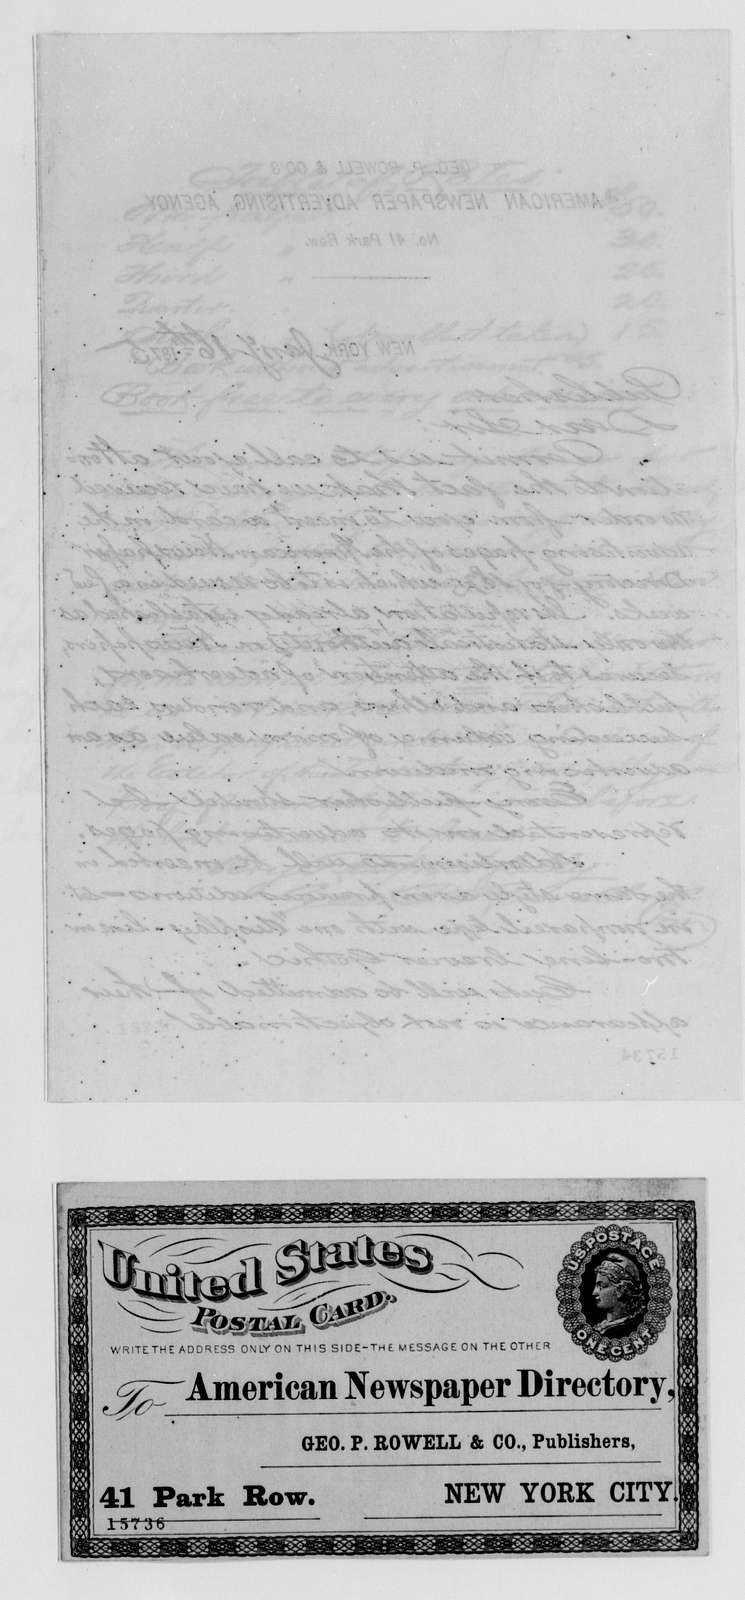 Alexander Hamilton Stephens Papers: General Correspondence, 1784-1886; 1874, Dec. 24-1875, Mar. 12